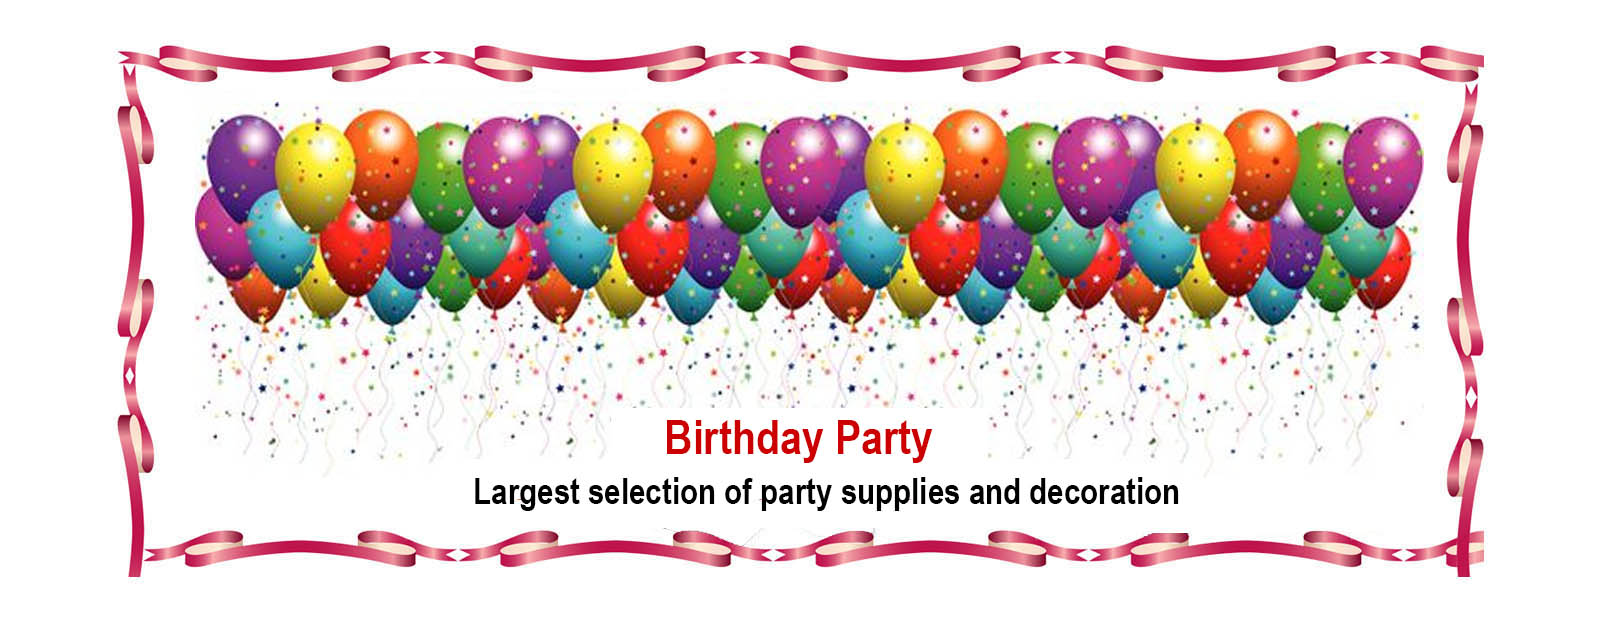 Birthday Party Supplies Party Plaza Shop in Glendale